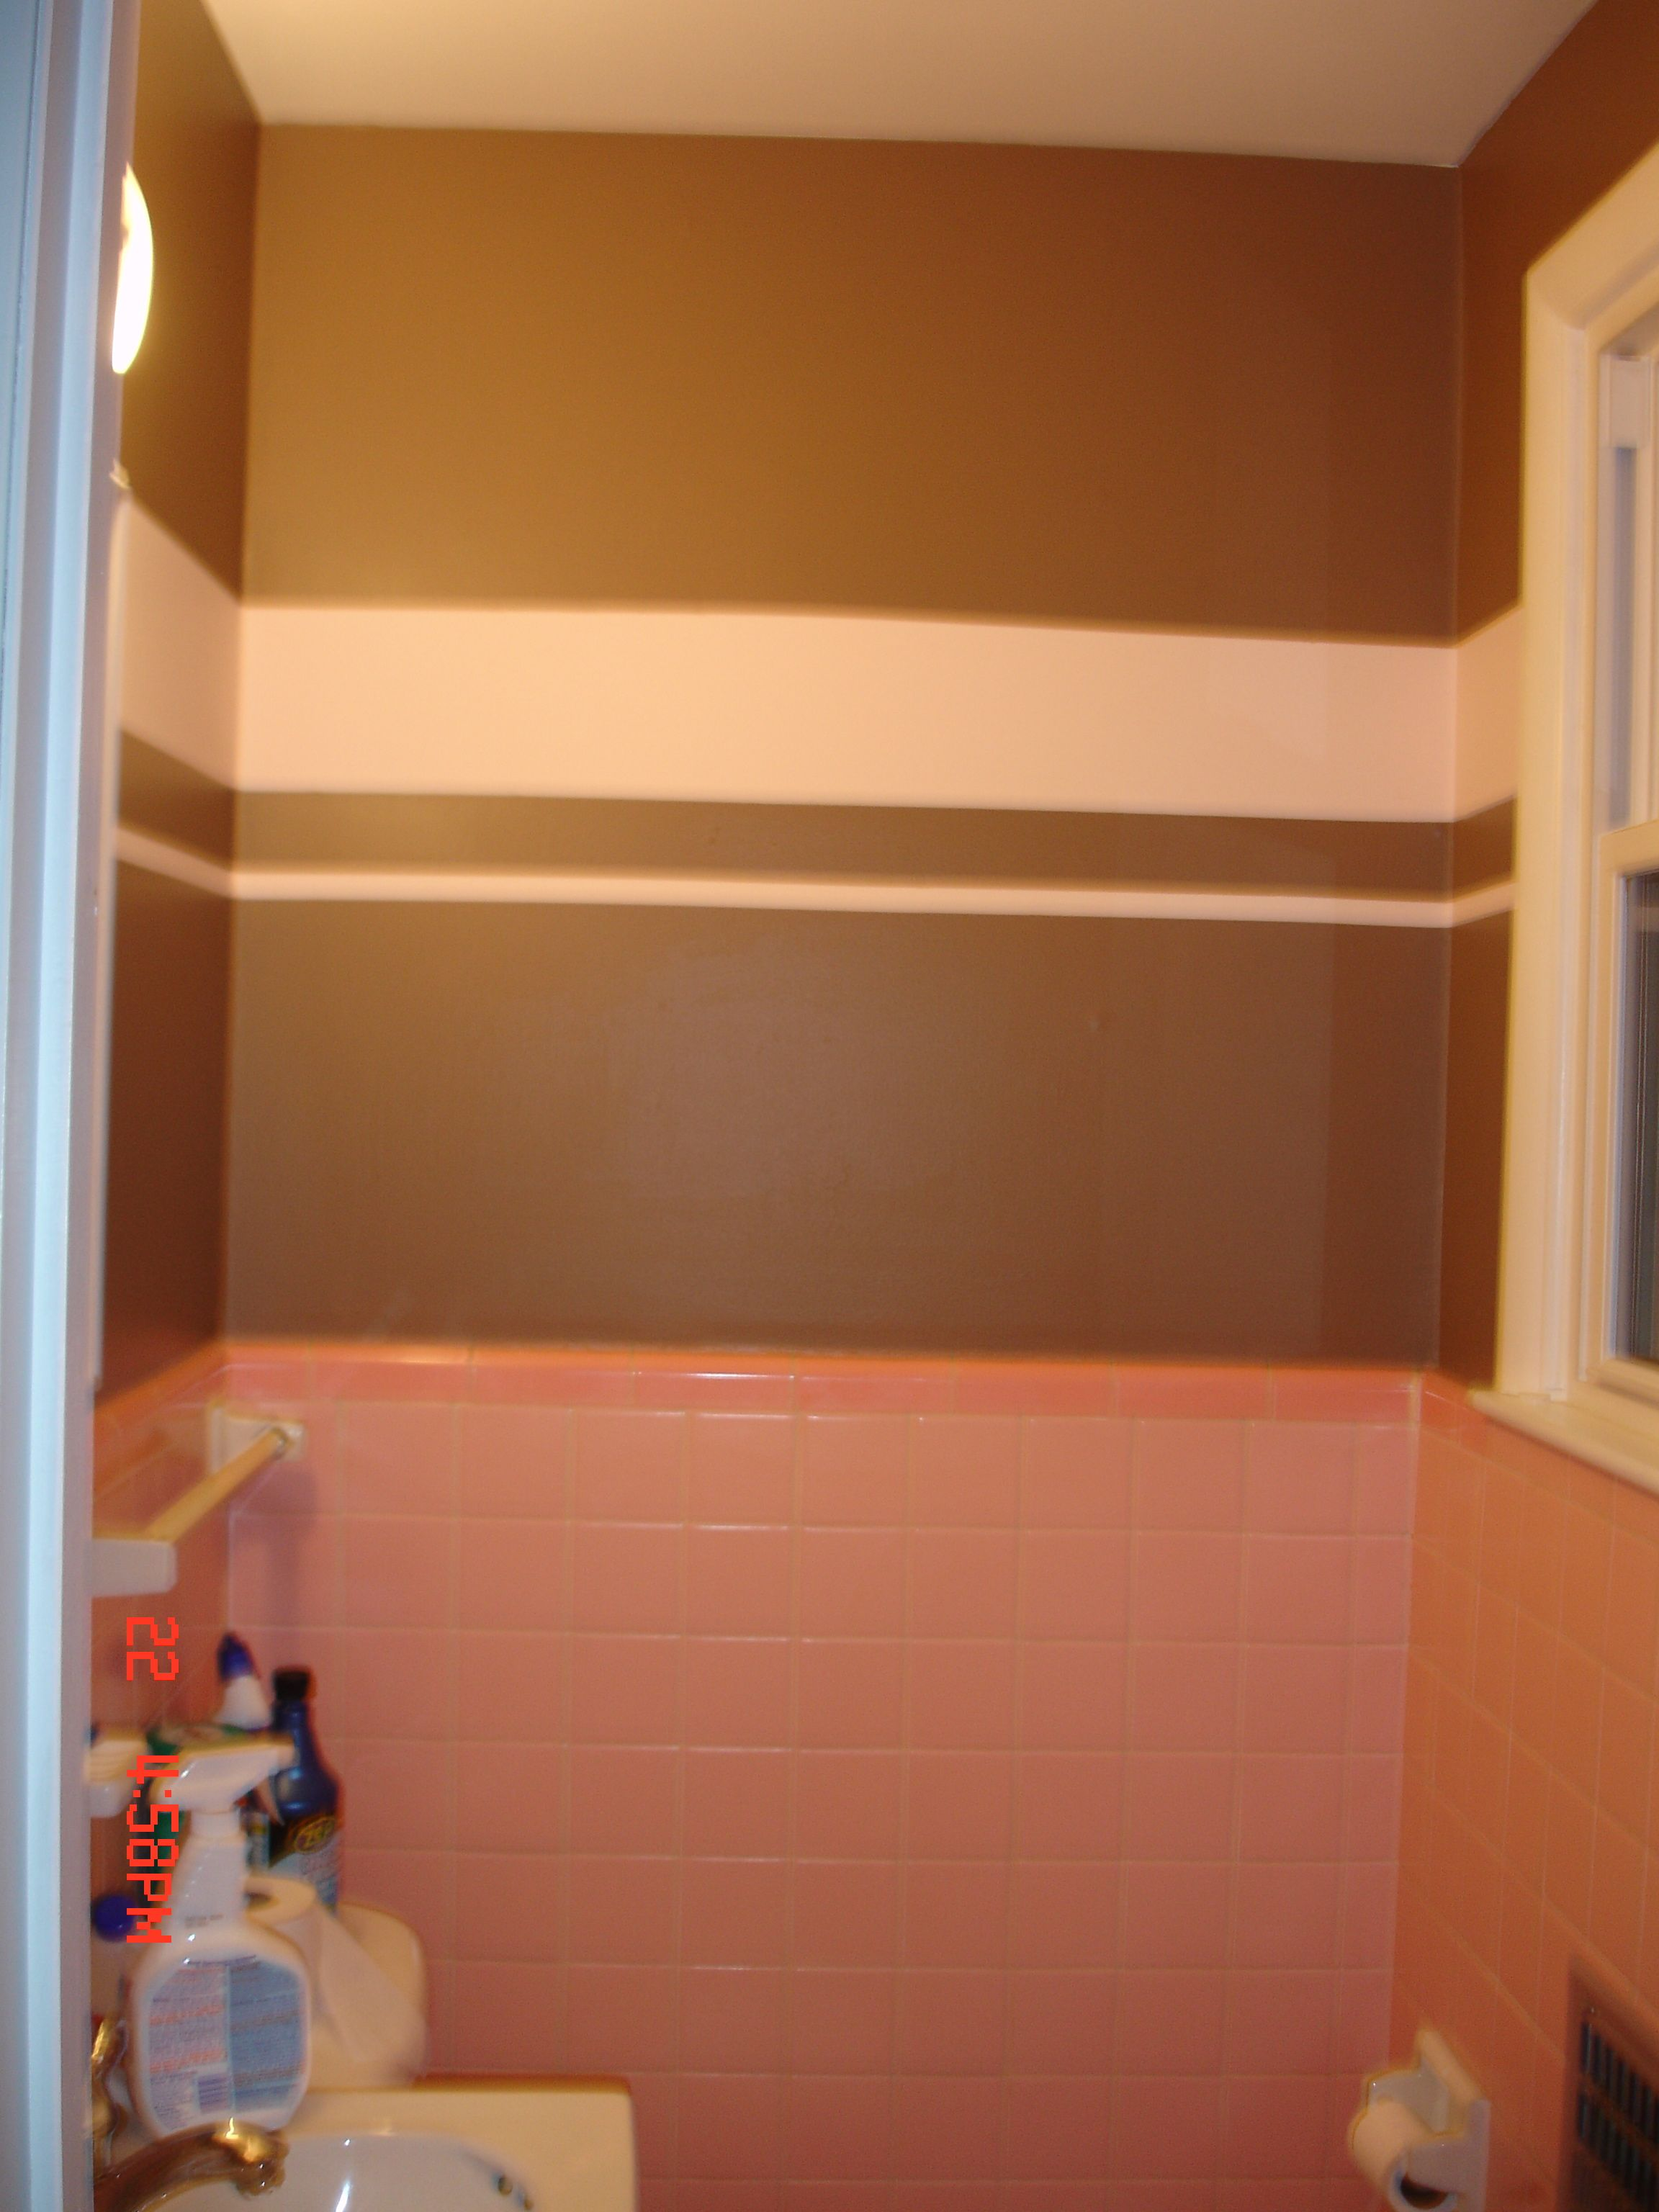 Pink And Brown Bathroom on pink and brown towels, pink and brown decorating ideas, pink bathroom makeover, pink bathroom paint color ideas, pink tile 50s bathroom, pink and brown appliances, pink and brown photography, vintage 50s pink bathroom, pink and brown sofa, pink and brown paint, pink bathroom wall decor, pink and brown jewelry, pink and brown crib, pink bathroom decorating ideas, pink bathroom sink, retro pink bathroom, pink and brown salon, pink and brown polka dots, pink and brown storage, pink and brown bedding,